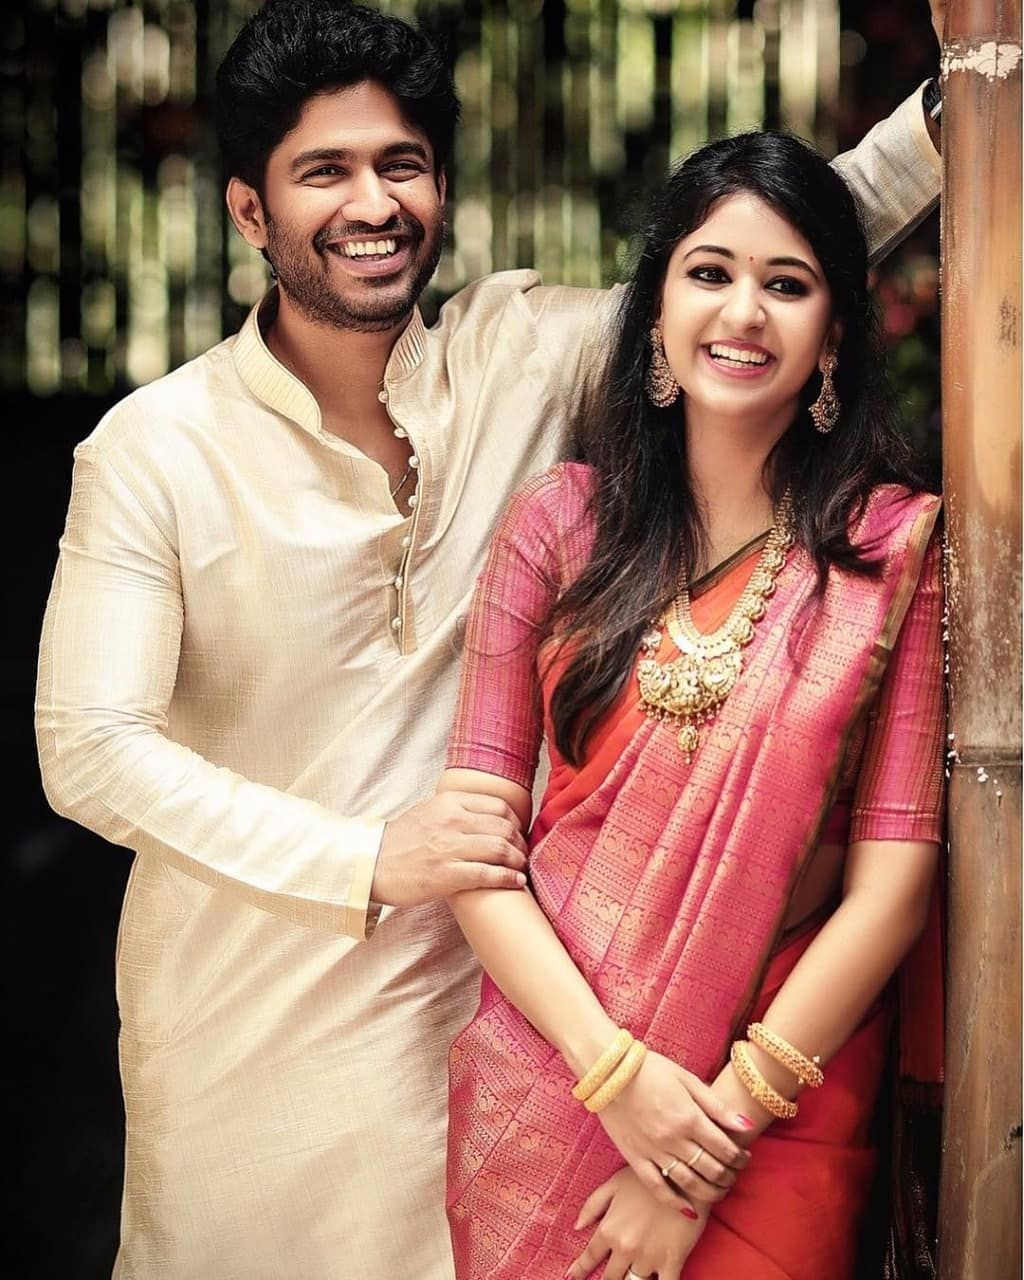 Friends Wedding Hairstyles Kerala: Love Is Defined Well When Her Smile Makes You Smile. 😍😍 We